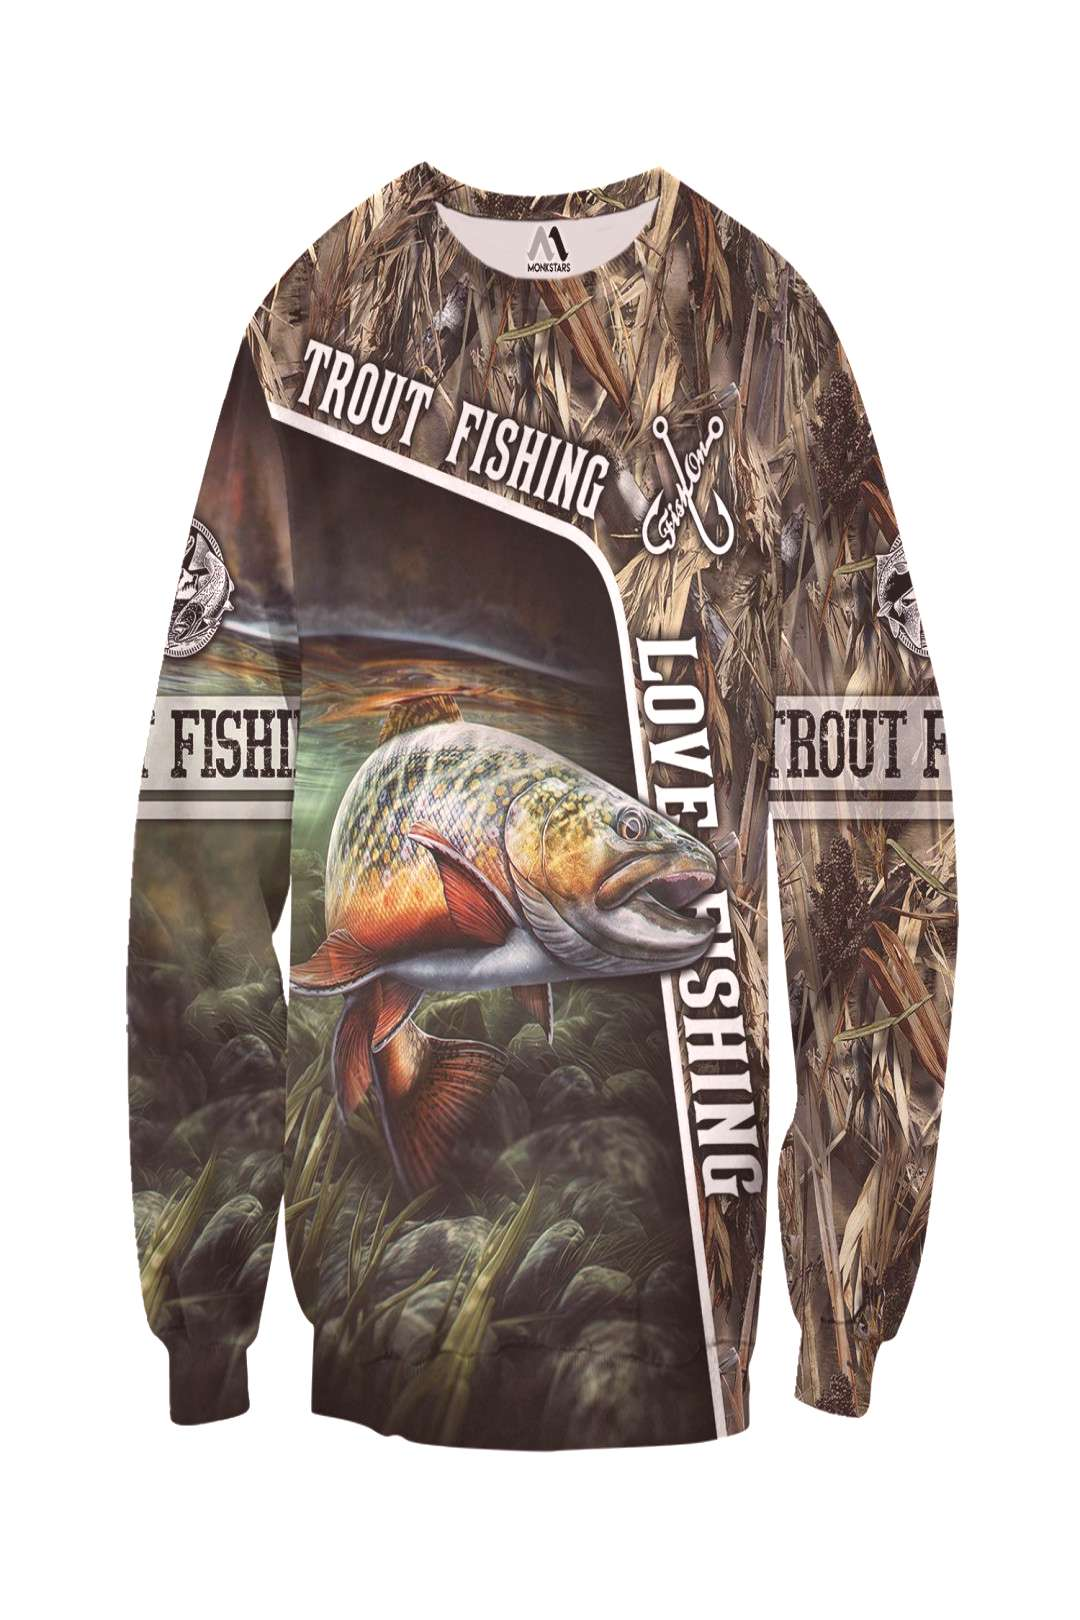 Trout Fishing Camo 3D All Over Printed Shirts - Monkstars In...-Trout Fishing Camo 3D All Over Prin